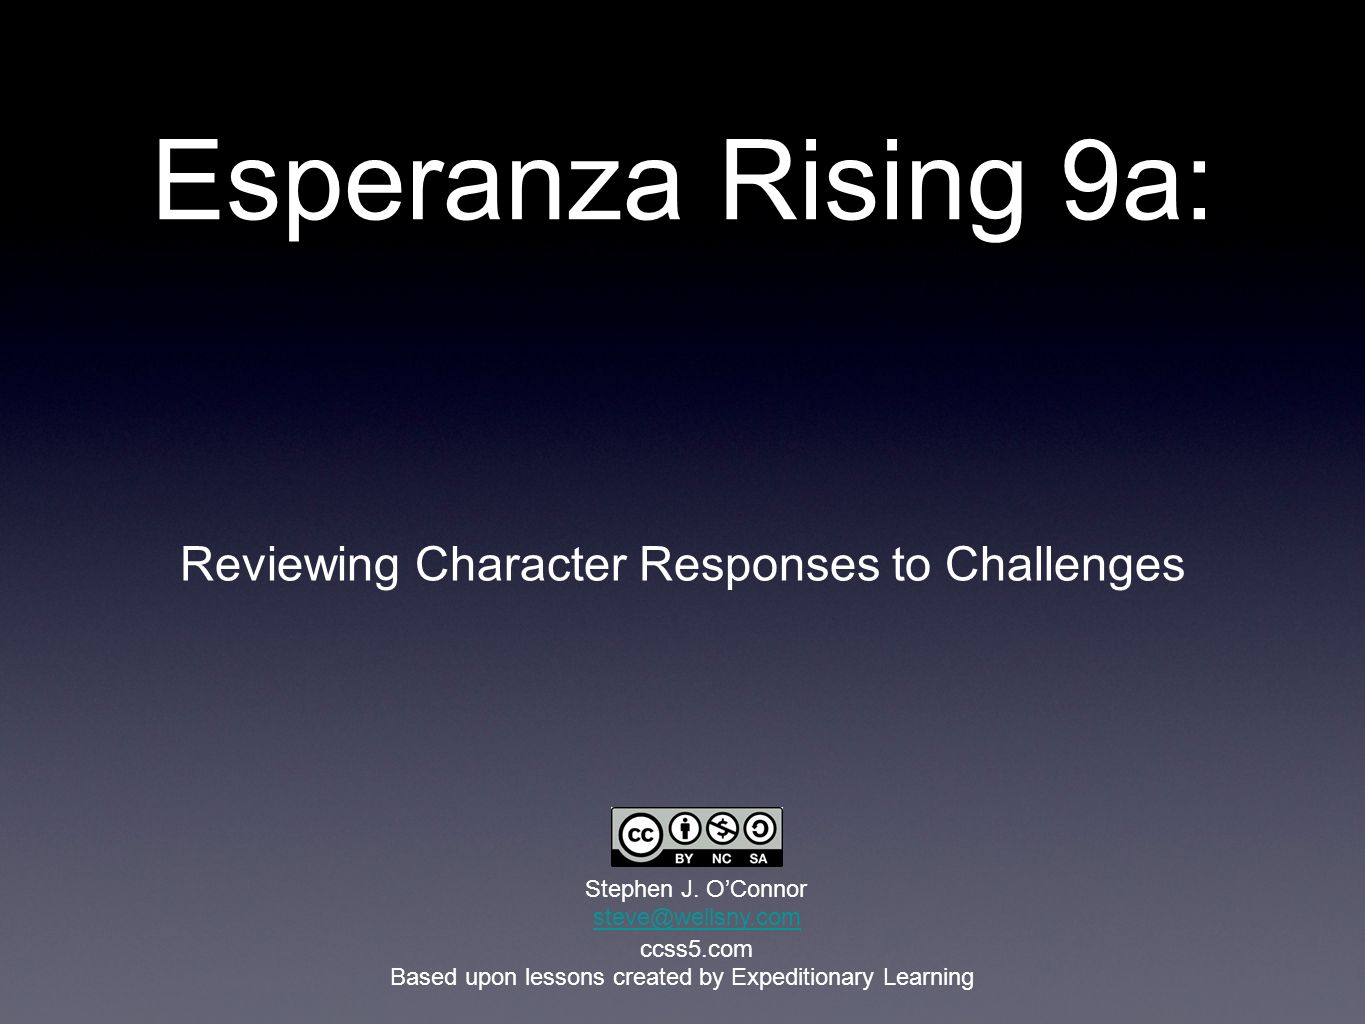 Esperanza Rising 9a: Reviewing Character Responses to Challenges